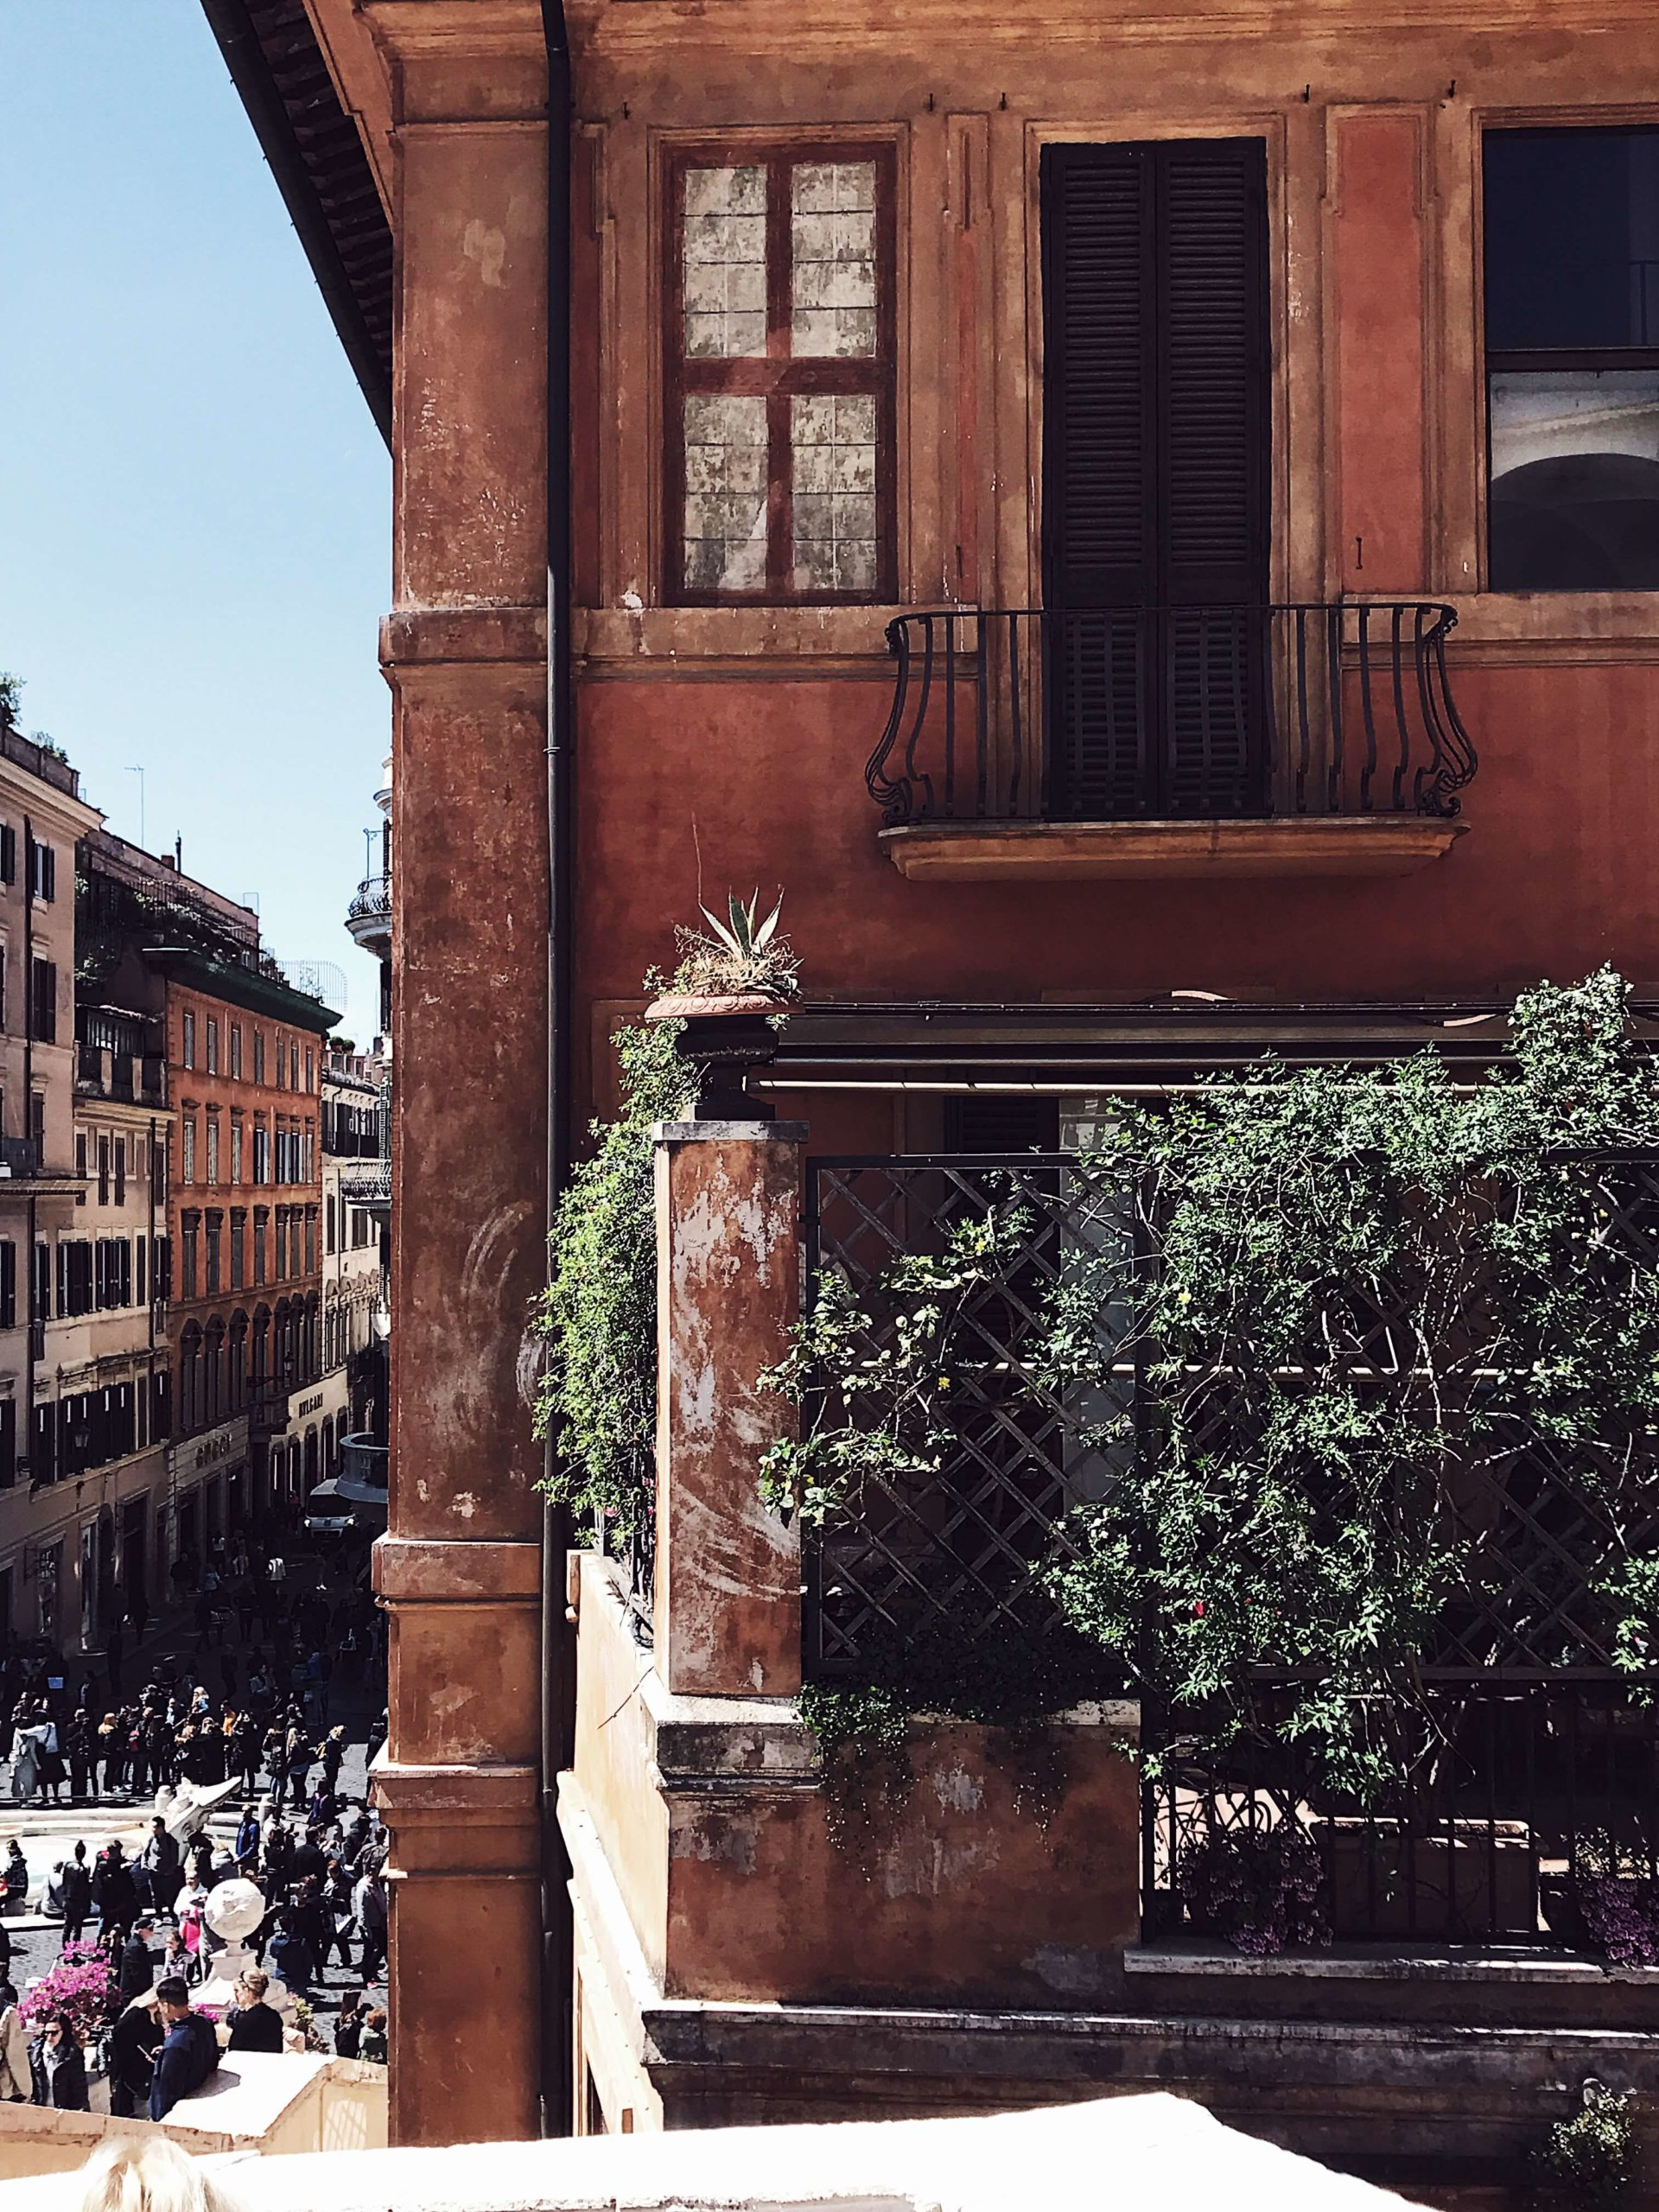 Rome in pictures: views of the city